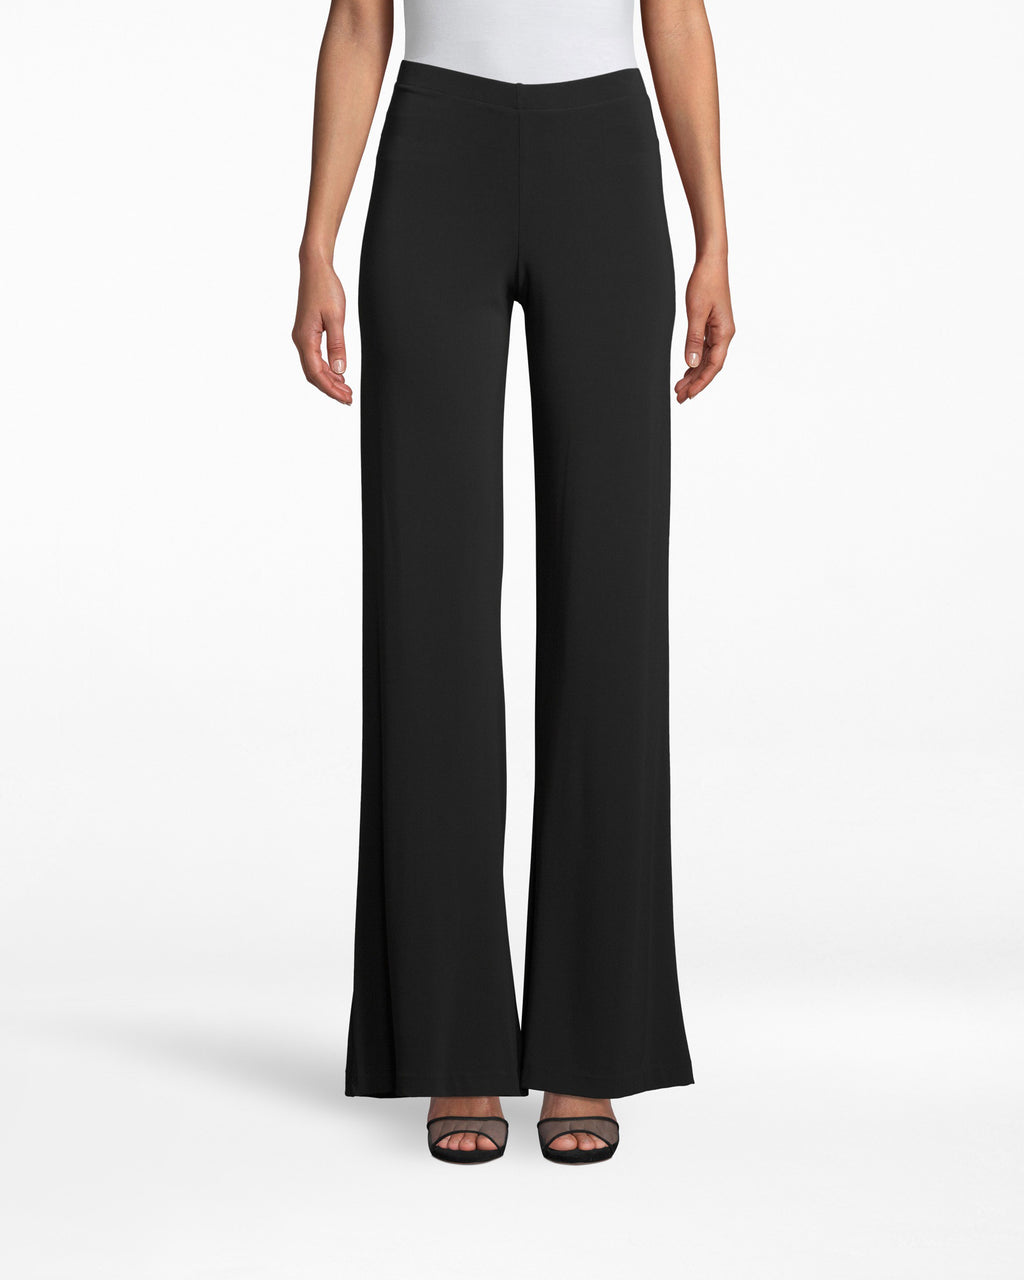 BD10093 - STRETCHY MATTE JERSEY EMMA PANT - bottoms - pants - SKYHIGH. THAT�S HOW YOUR LEGS WILL LOOK IN THESE SLIMMING PANTS. WIDELEGS WITH A FLOORLENGTH HEMLINE CREATE THE PERFECT SILHOUETTE.